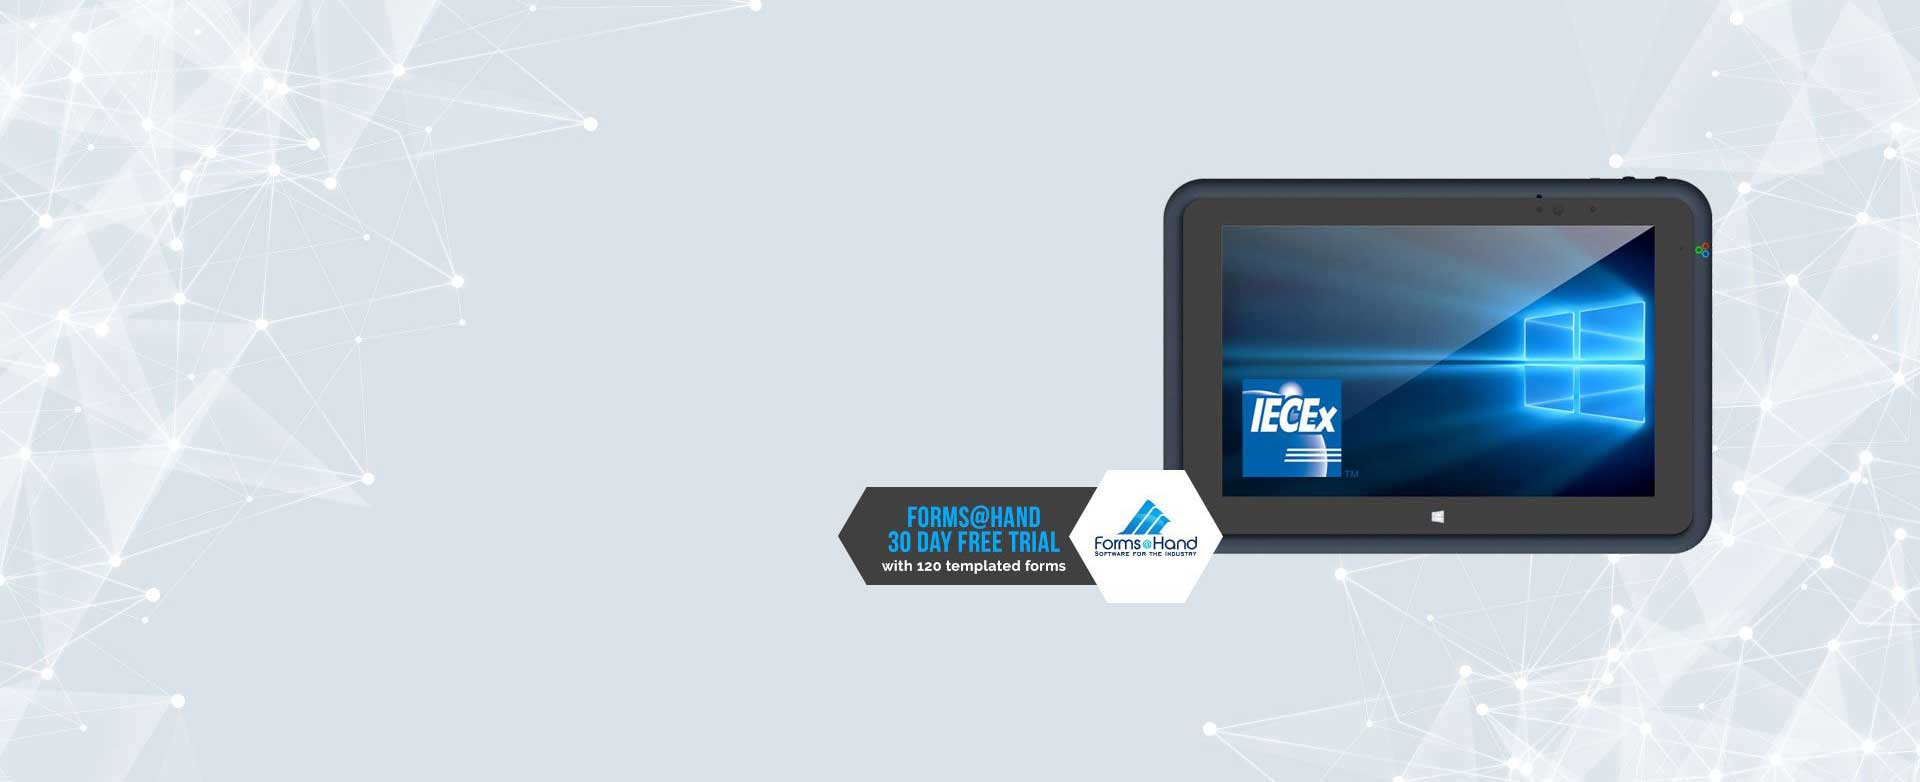 Aegex Intrinsically Safe Tablet